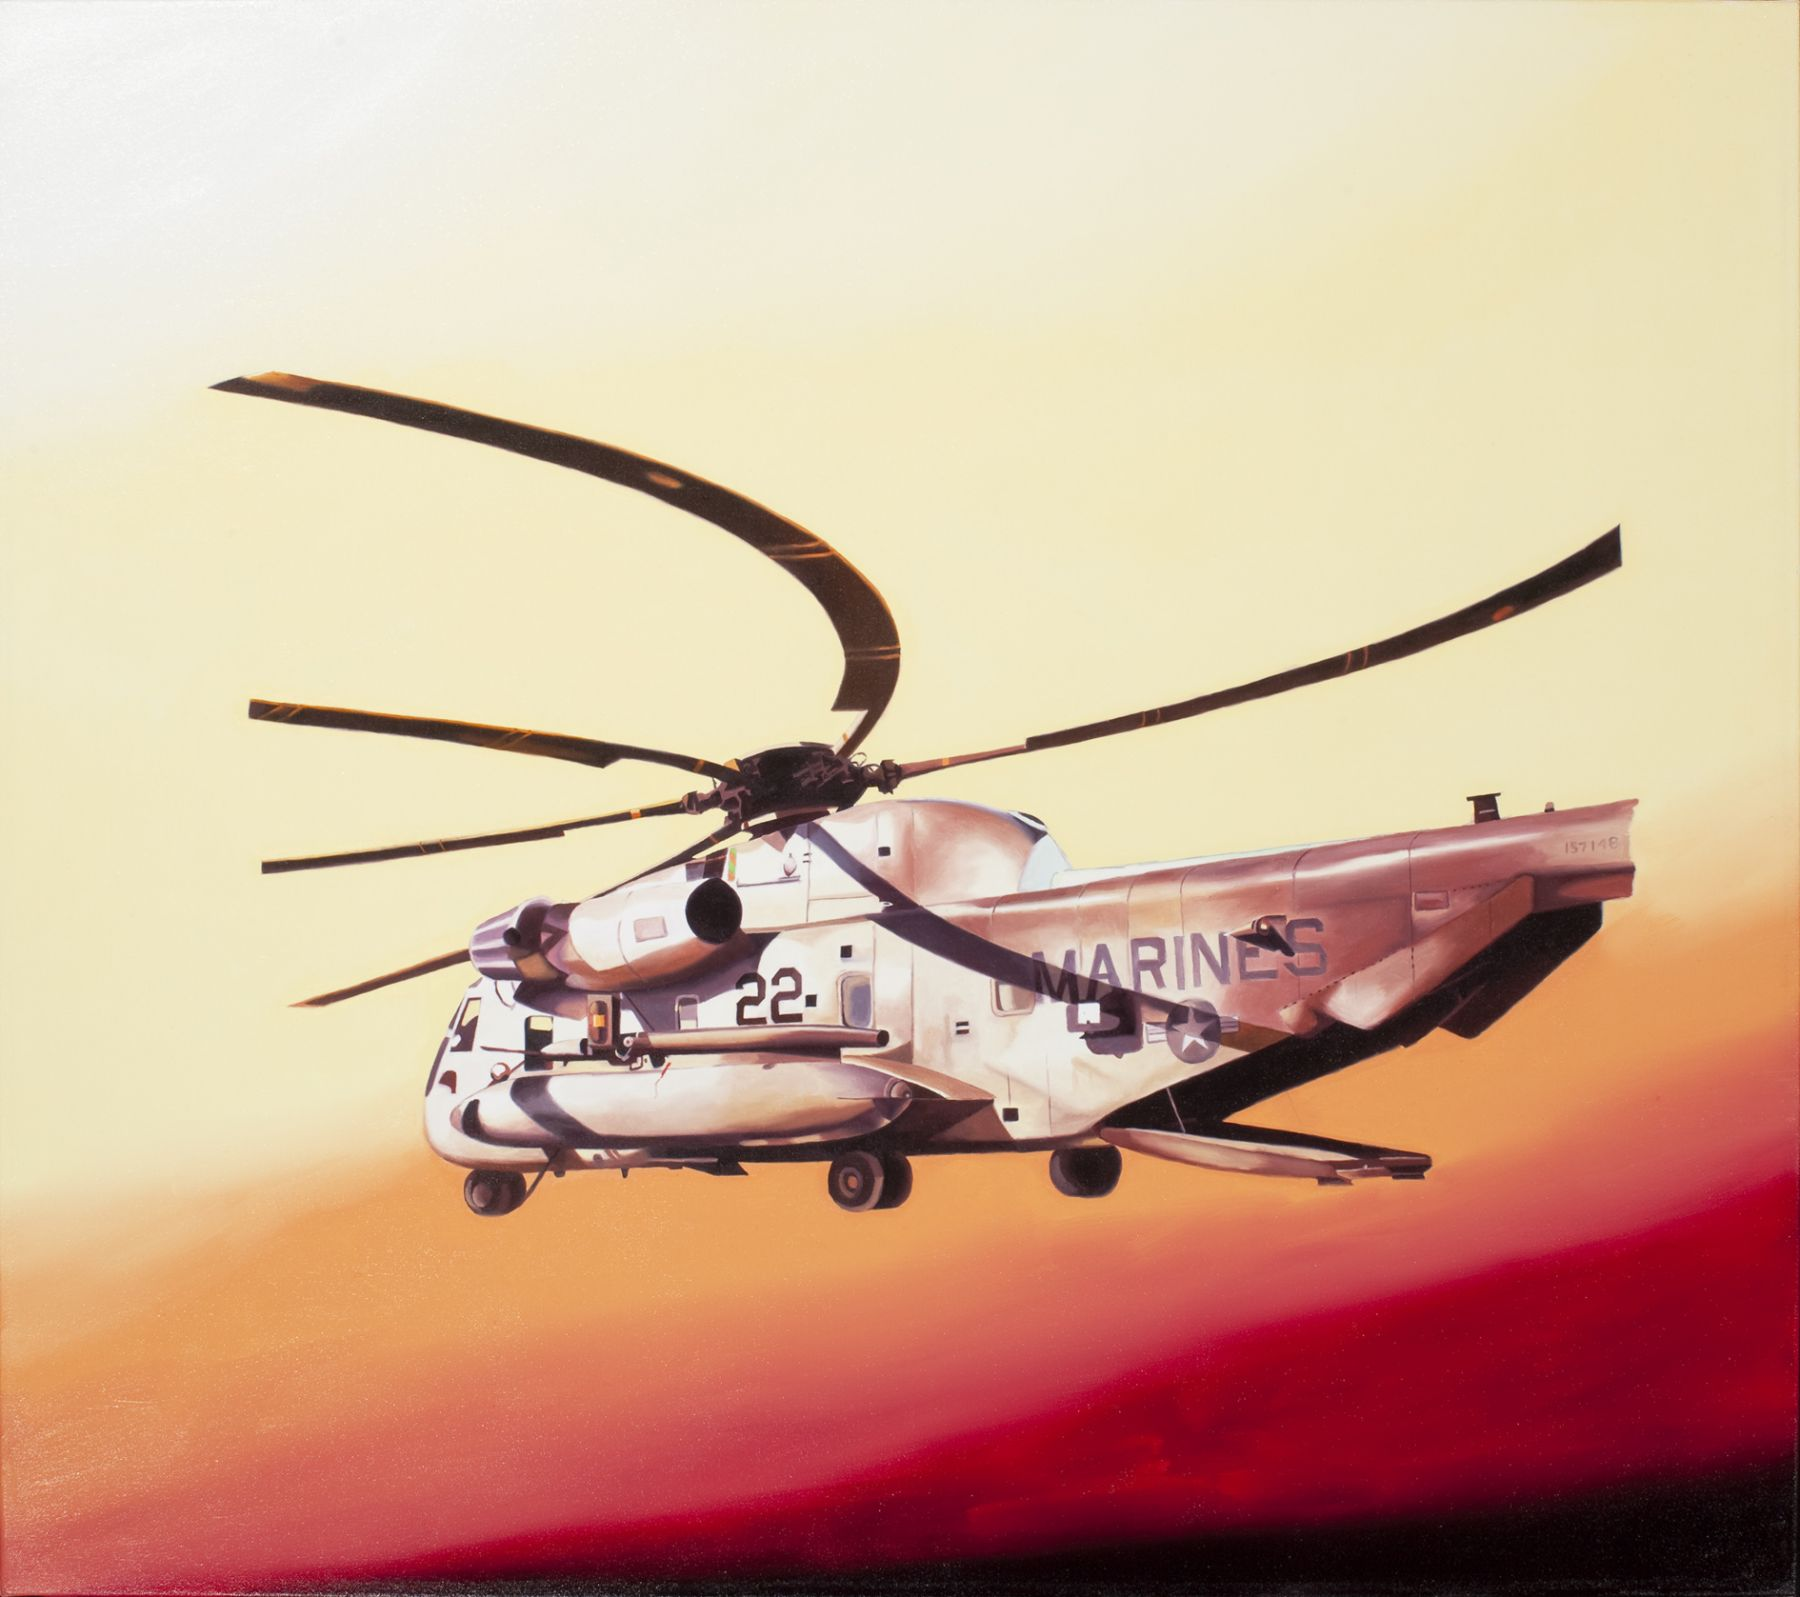 megan rye, Red Helicopter, 2011, oil on canvas, 35 x 40 inches